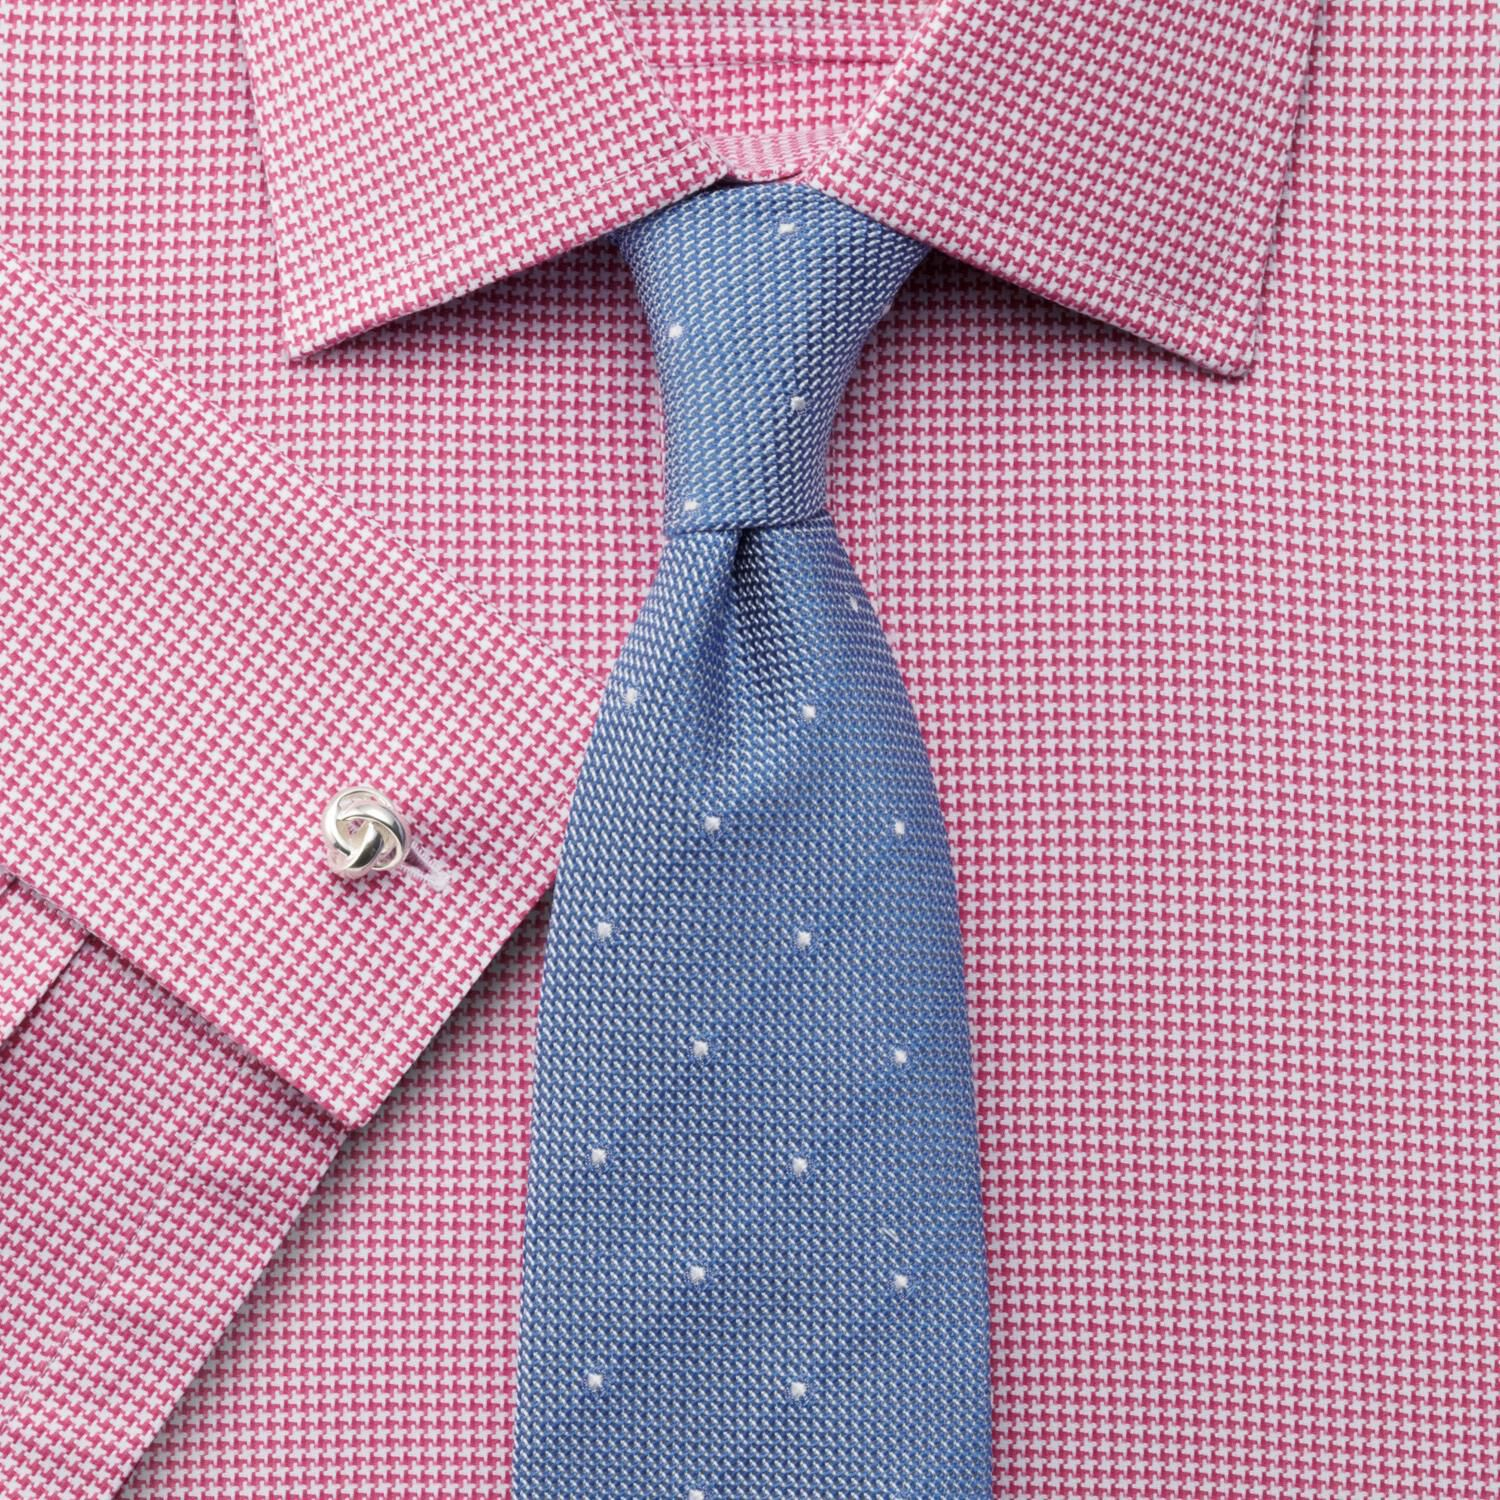 Classic Fit Egyptian Cotton Puppytooth Pink Formal Shirt Double Cuff Size 17/36 by Charles Tyrwhitt